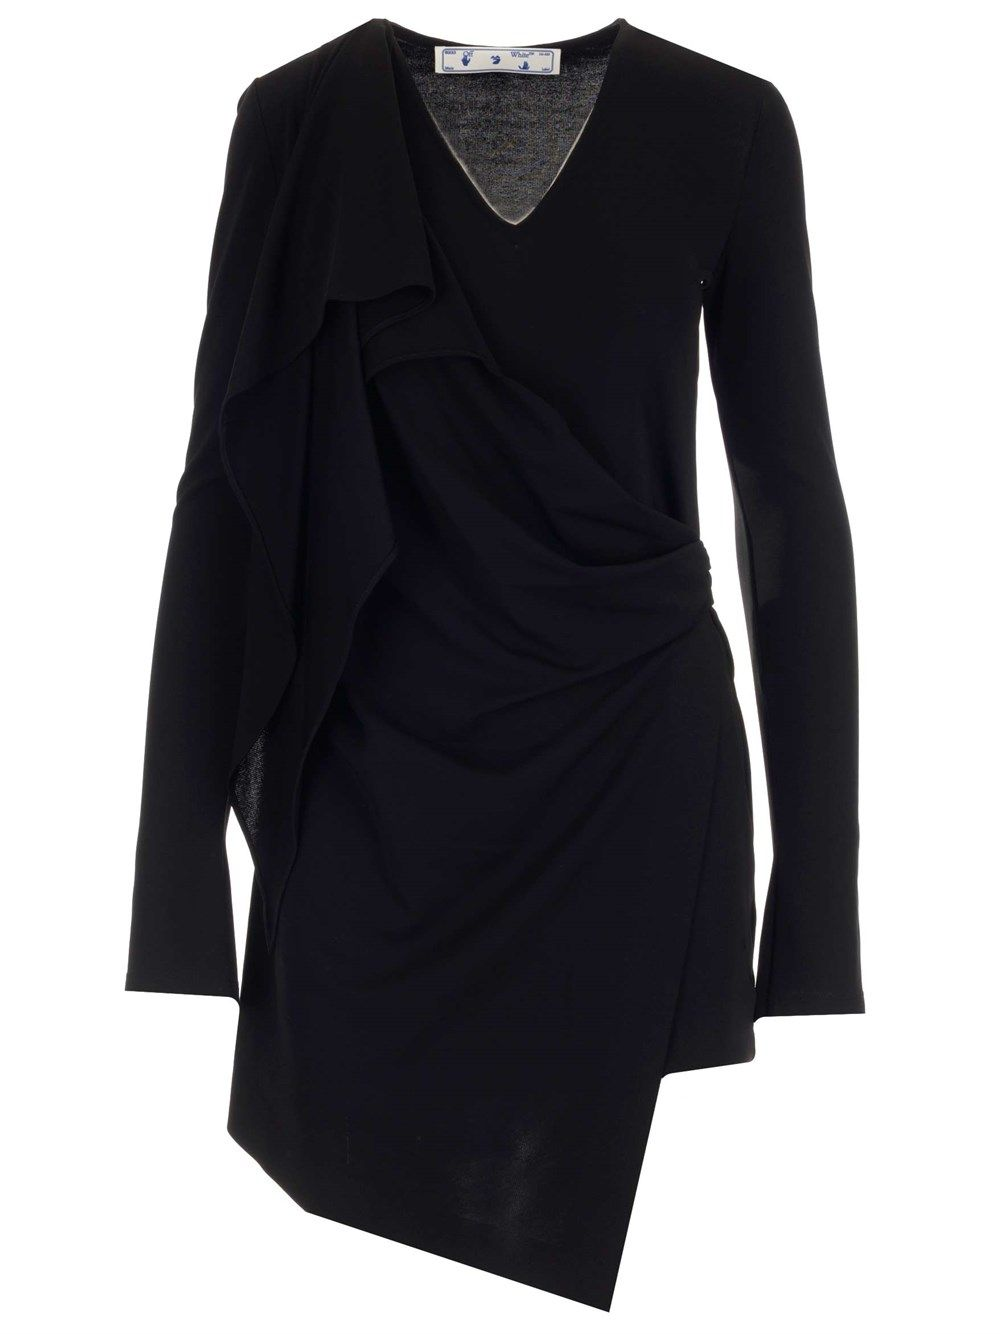 Off-White Dresses OFF-WHITE WOMEN'S OWDB309S21FAB0011001 BLACK OTHER MATERIALS DRESS